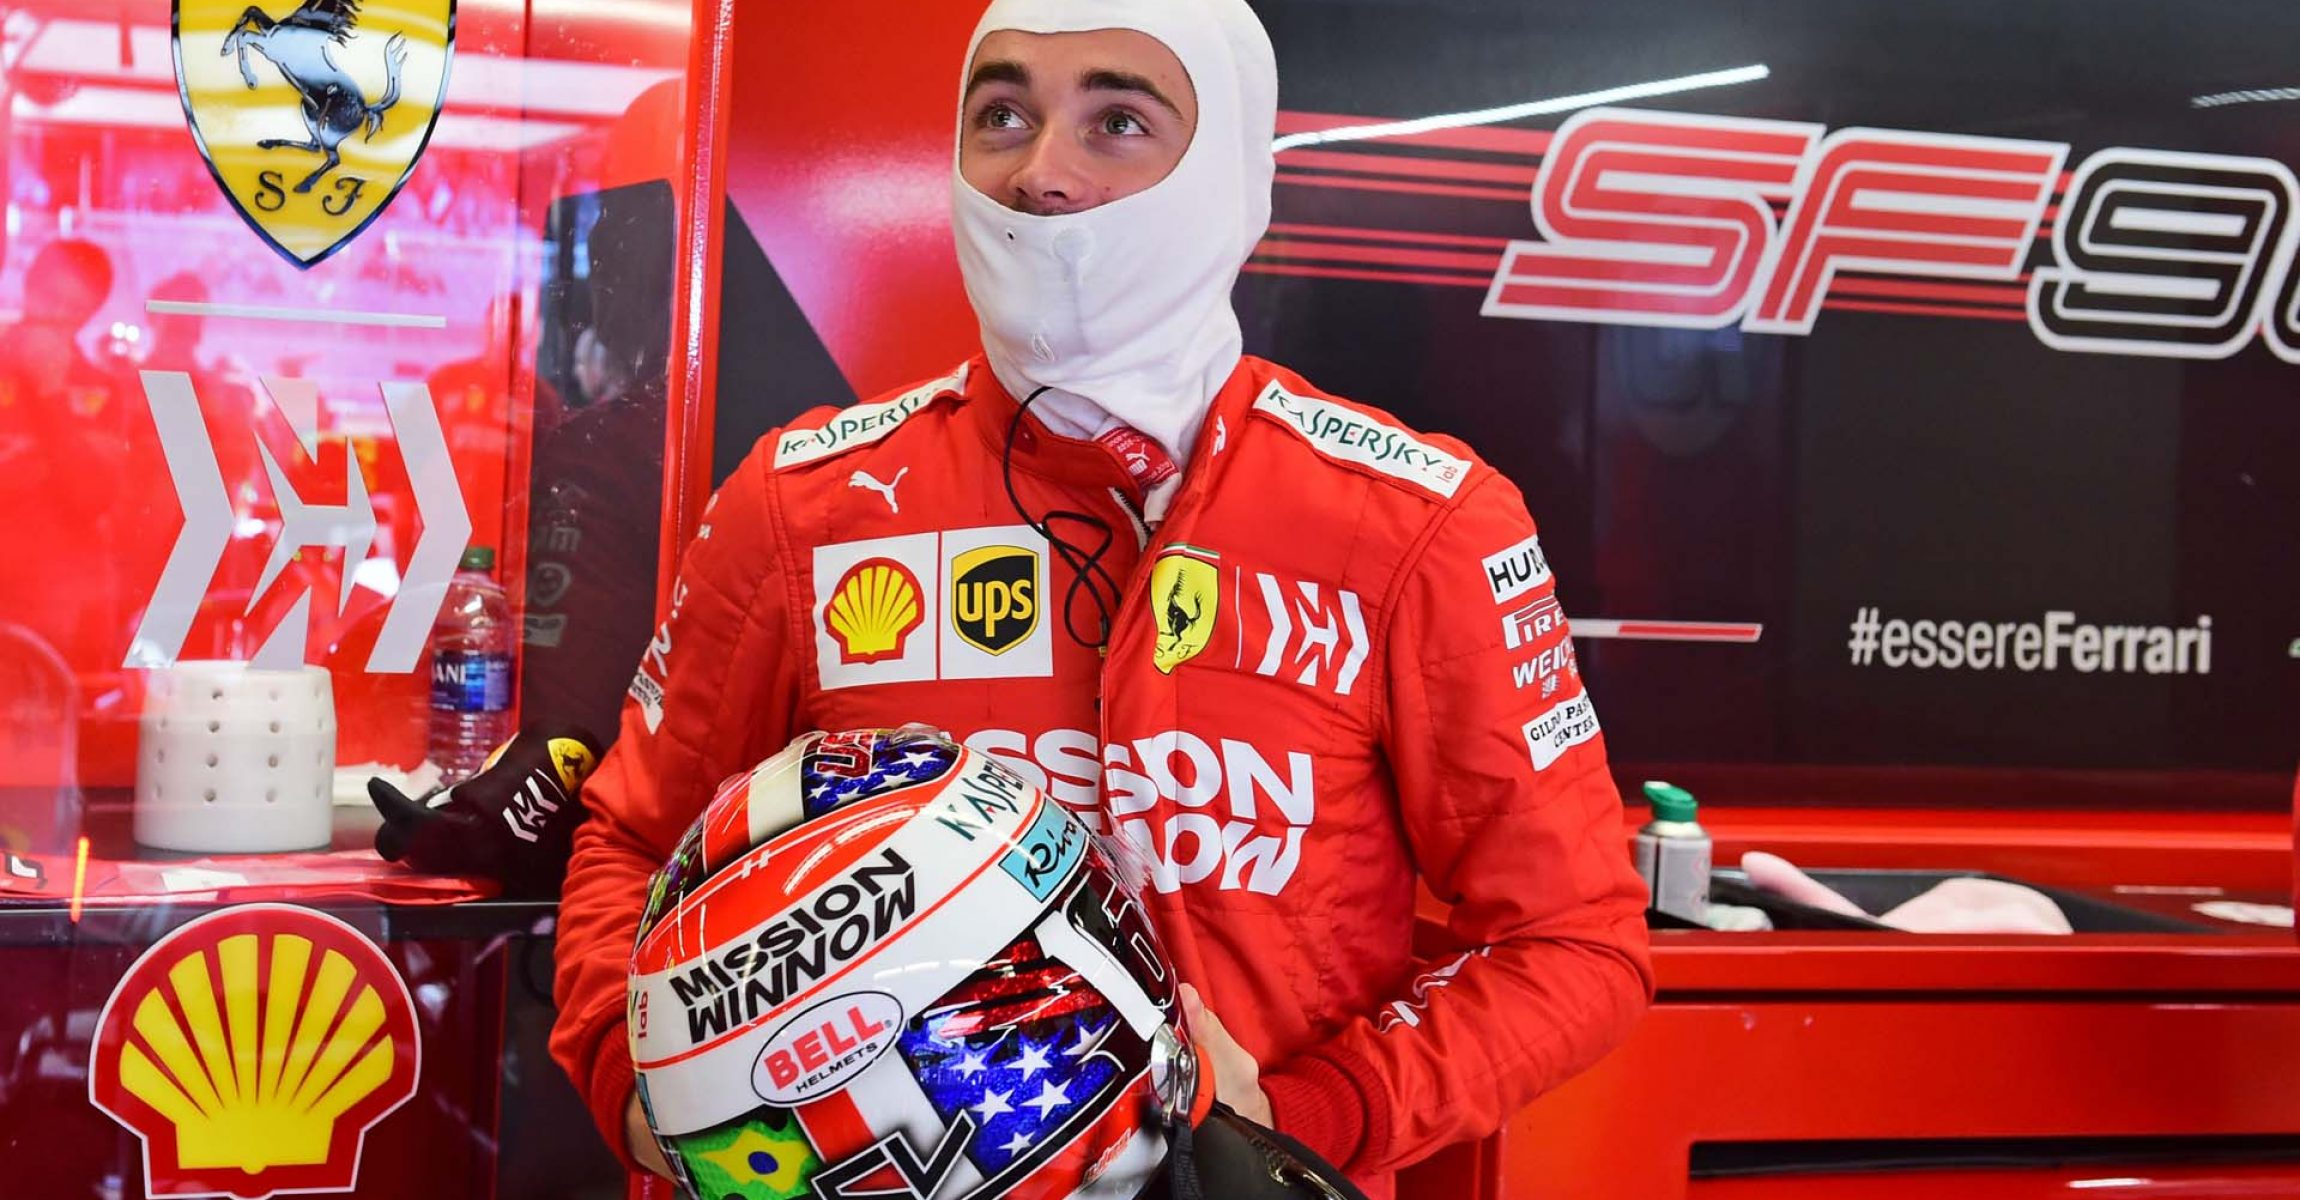 GP USA F1/2019 - SABATO 02/11/2019 credit: @Scuderia Ferrari Press Office Charles Leclerc Ferrari